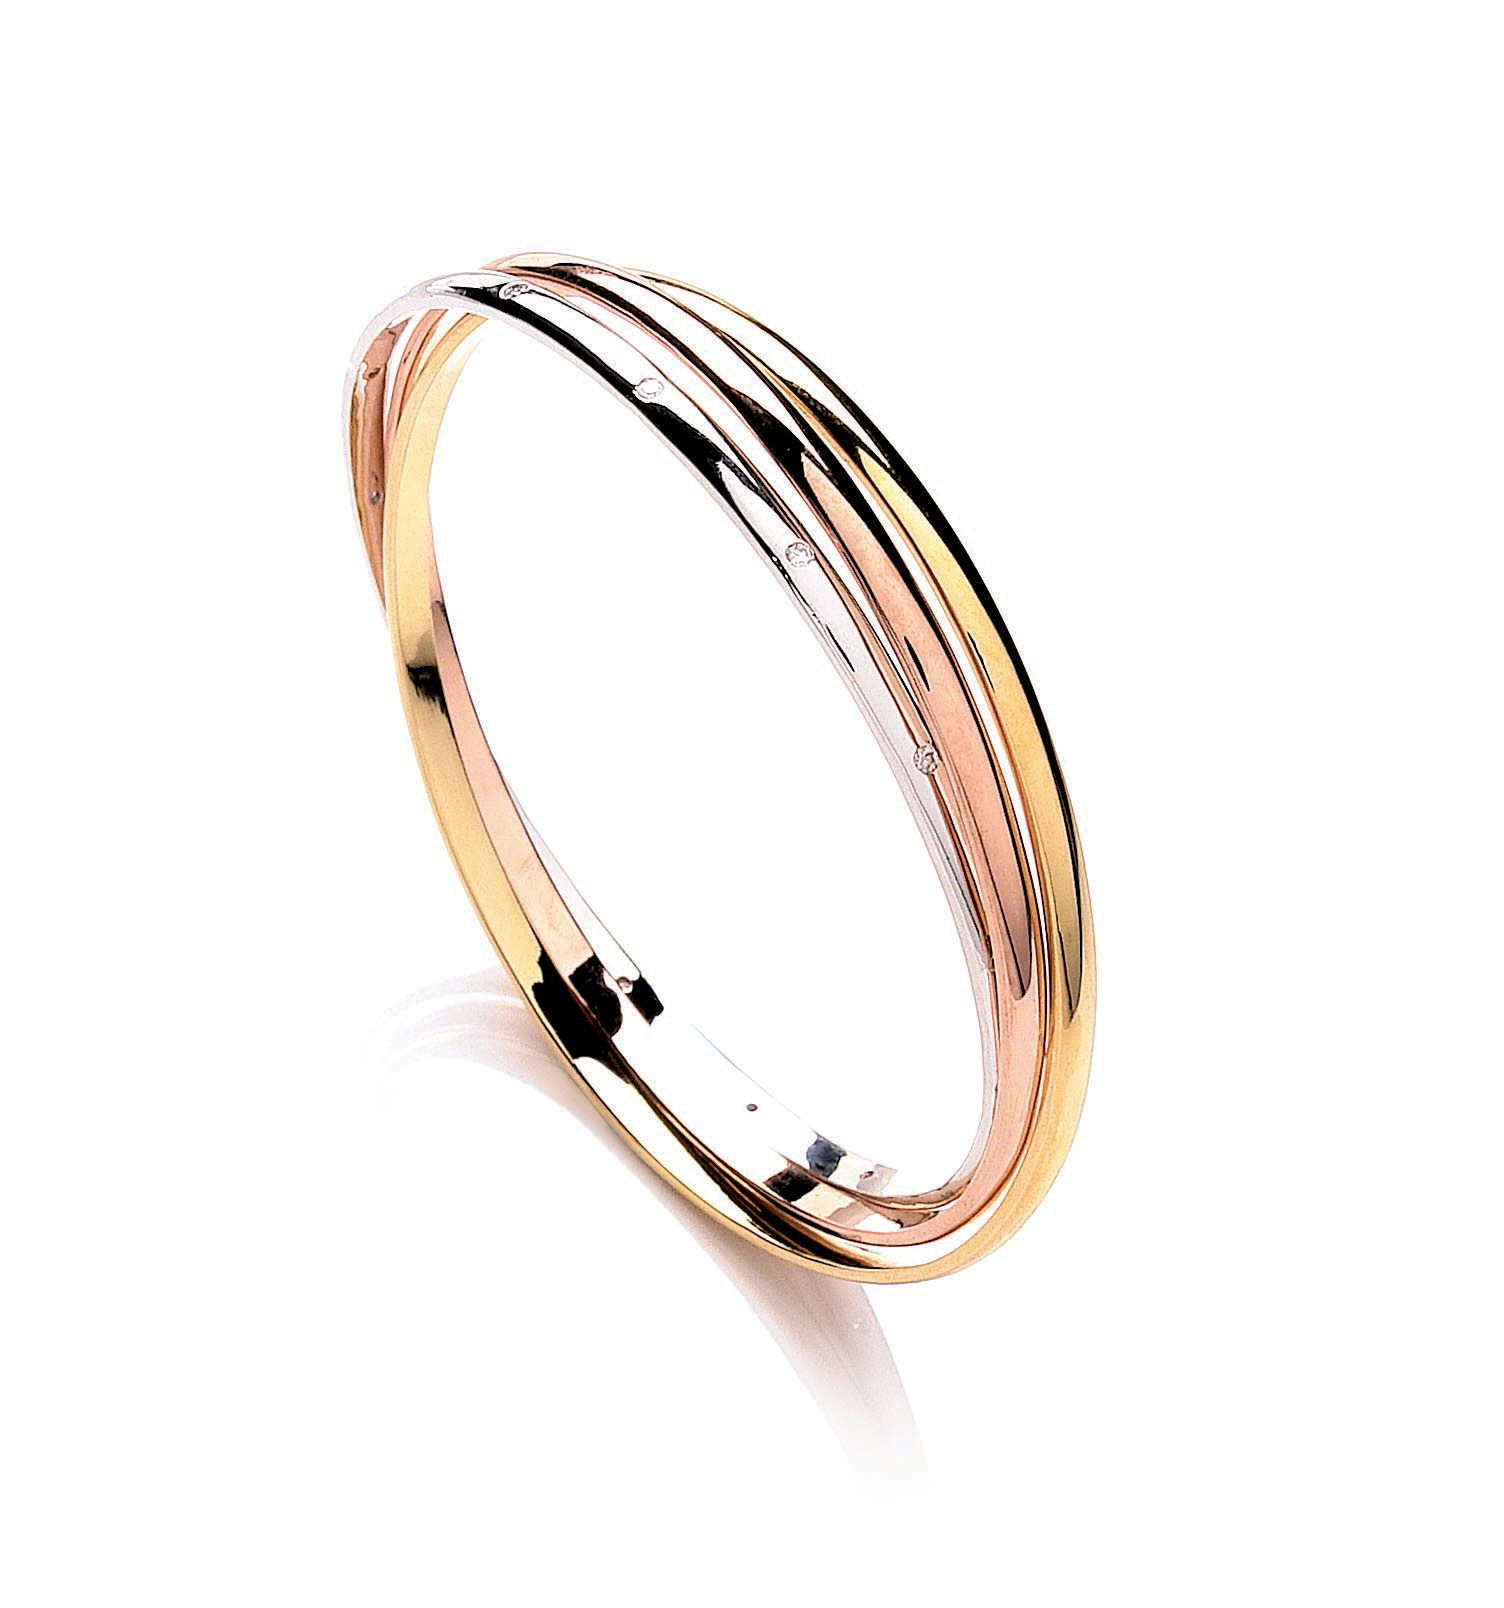 Russian trio bangle